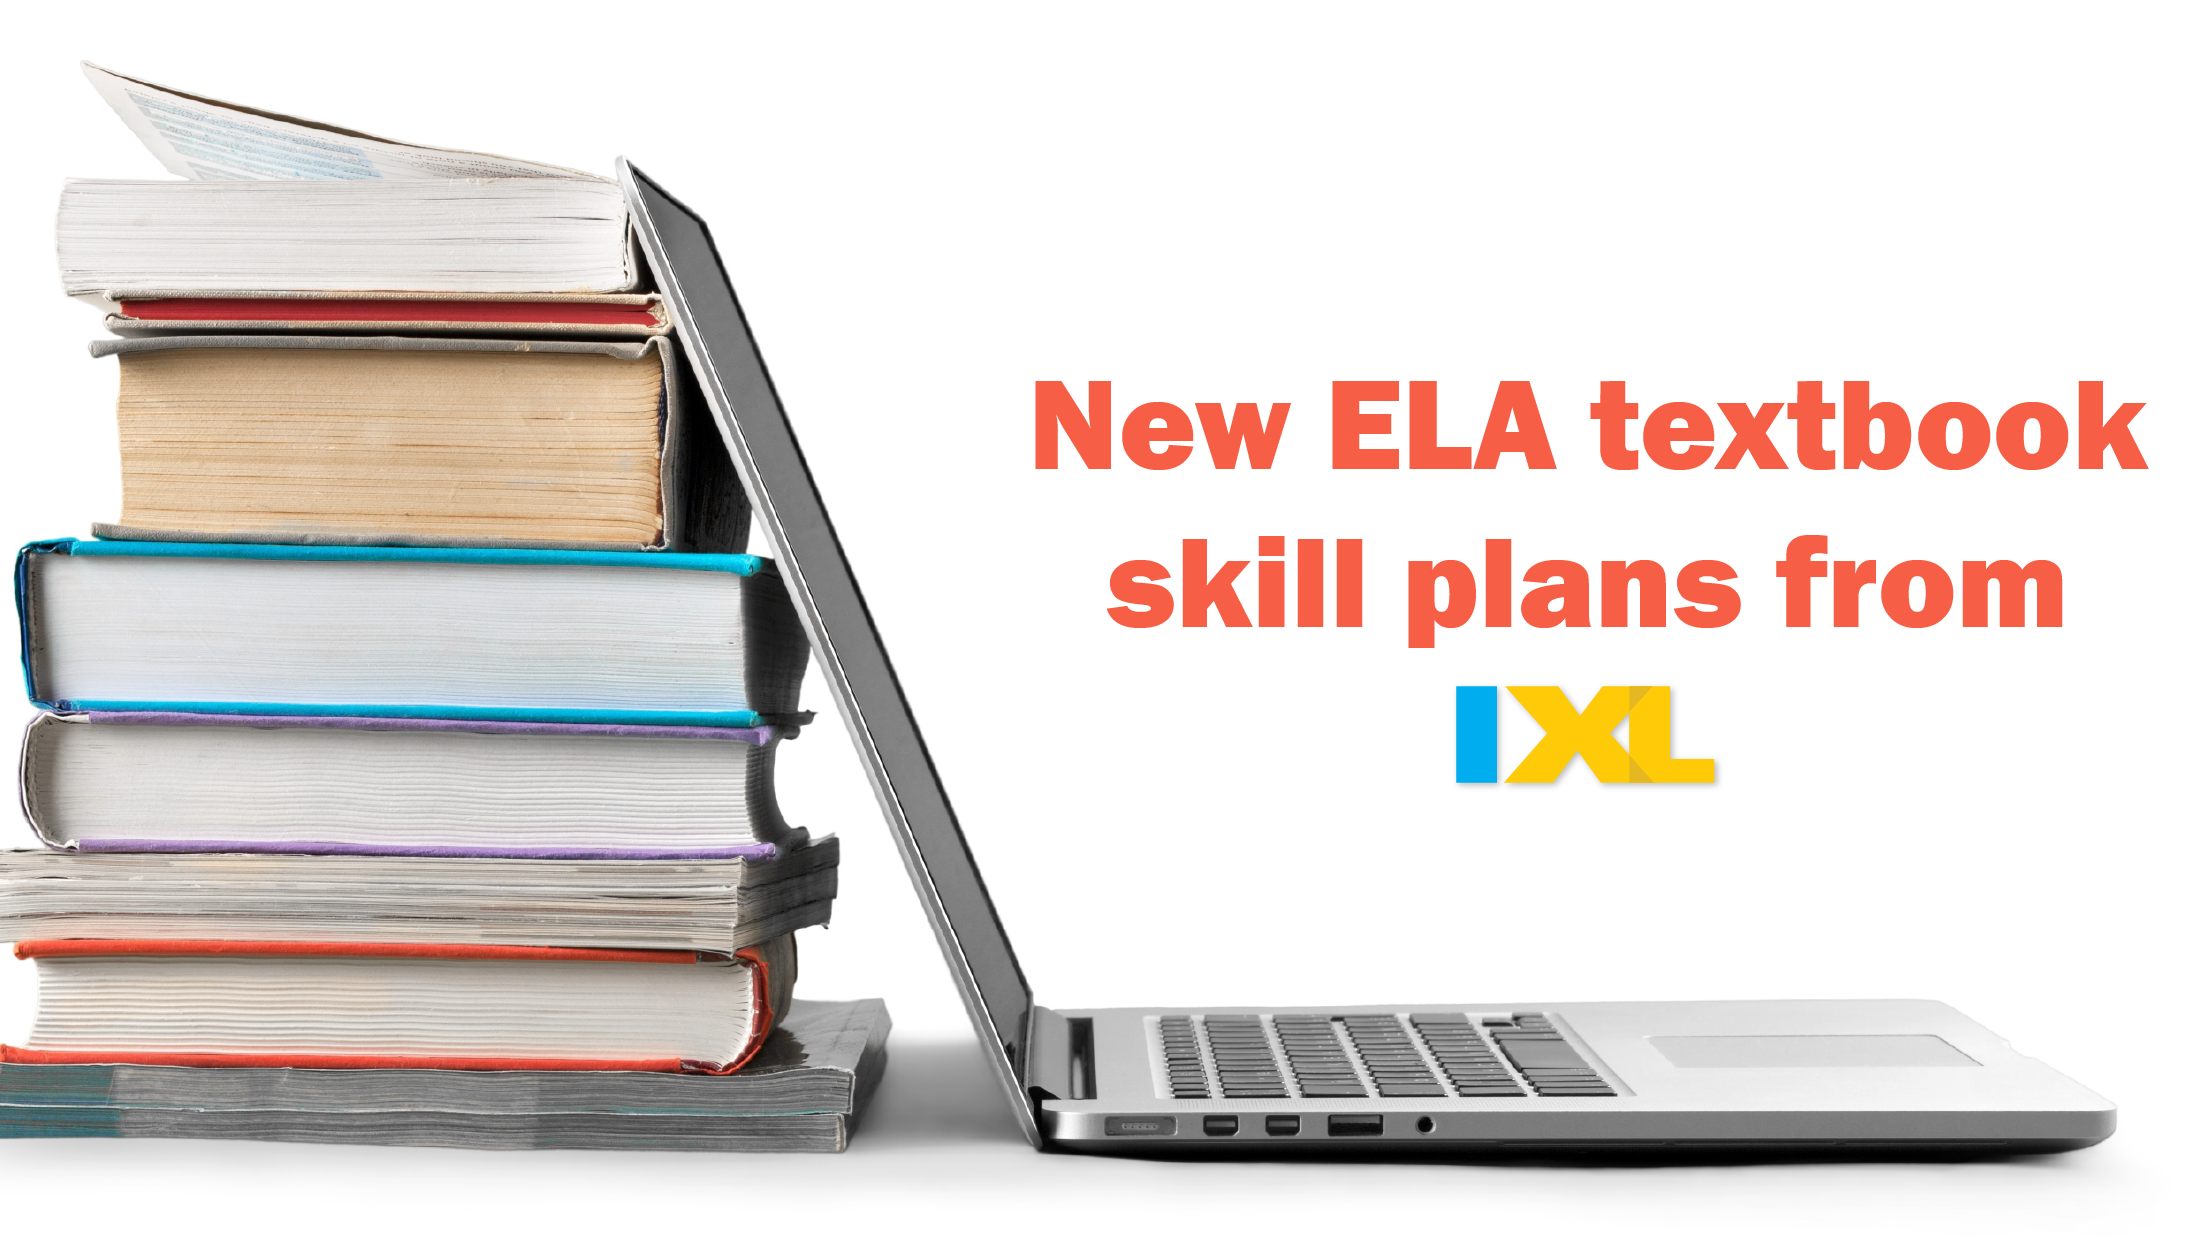 Explore our new ELA textbook skill plans!